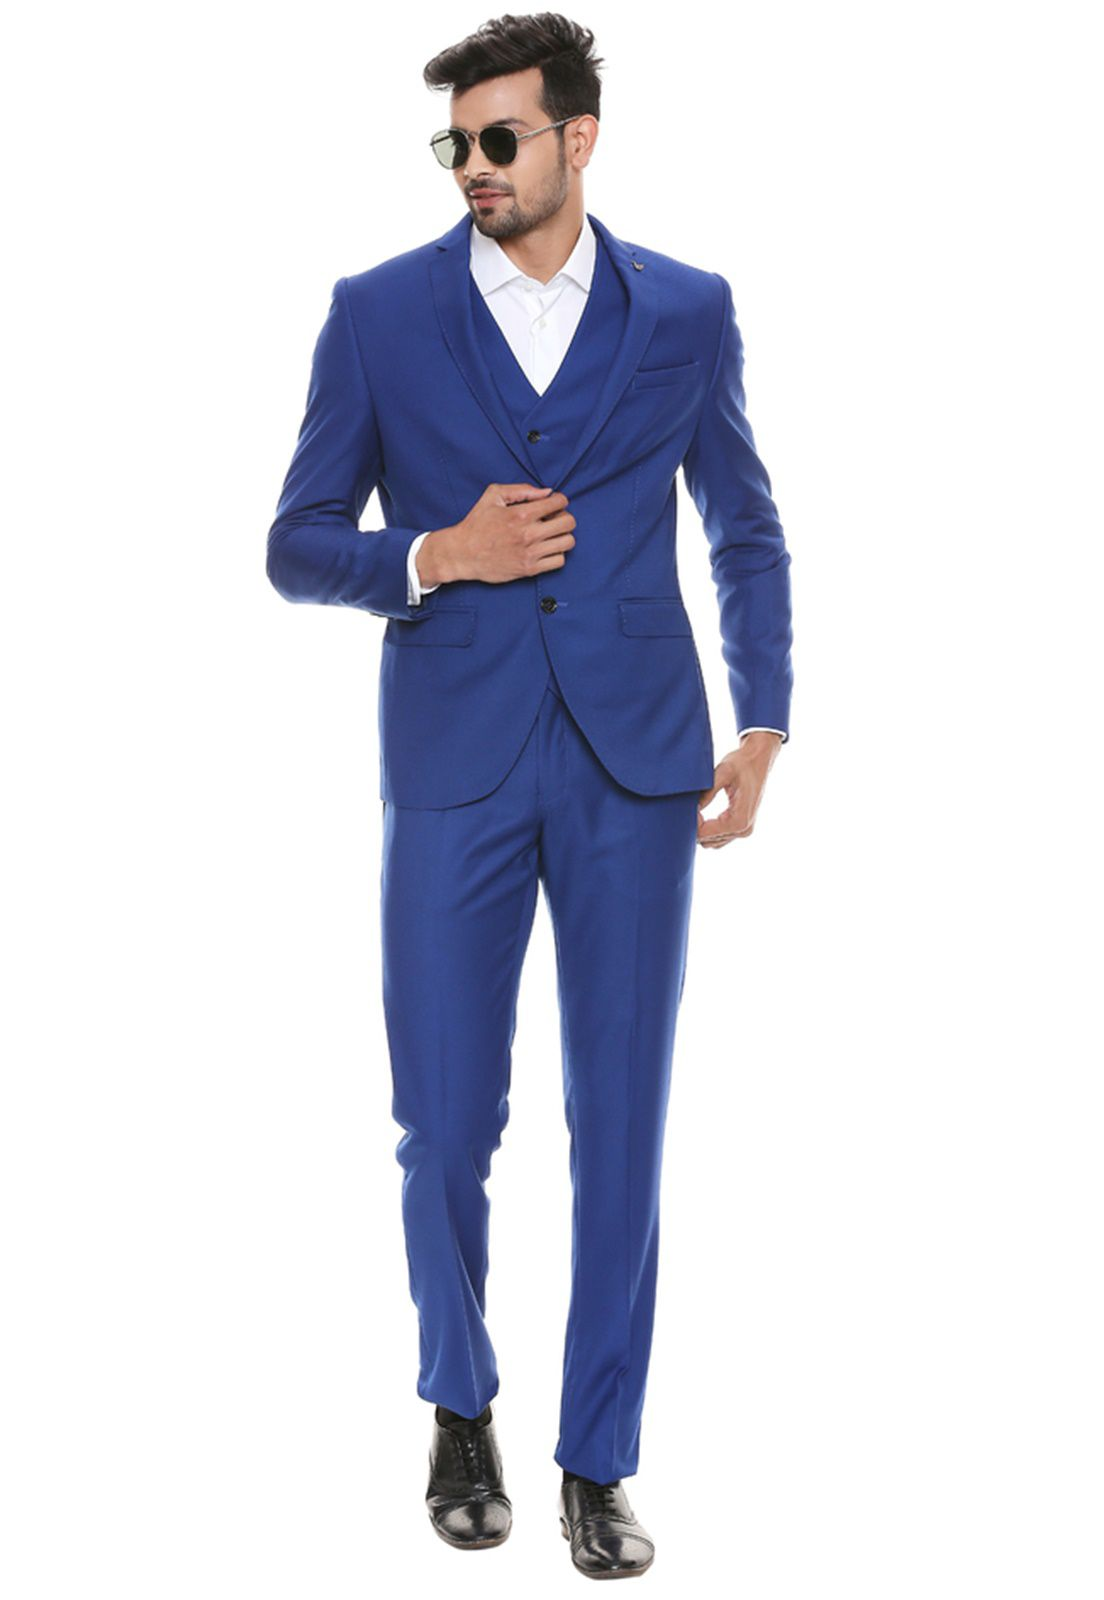 Terno Slim Masculino Oxford Azul Royal Jordhan